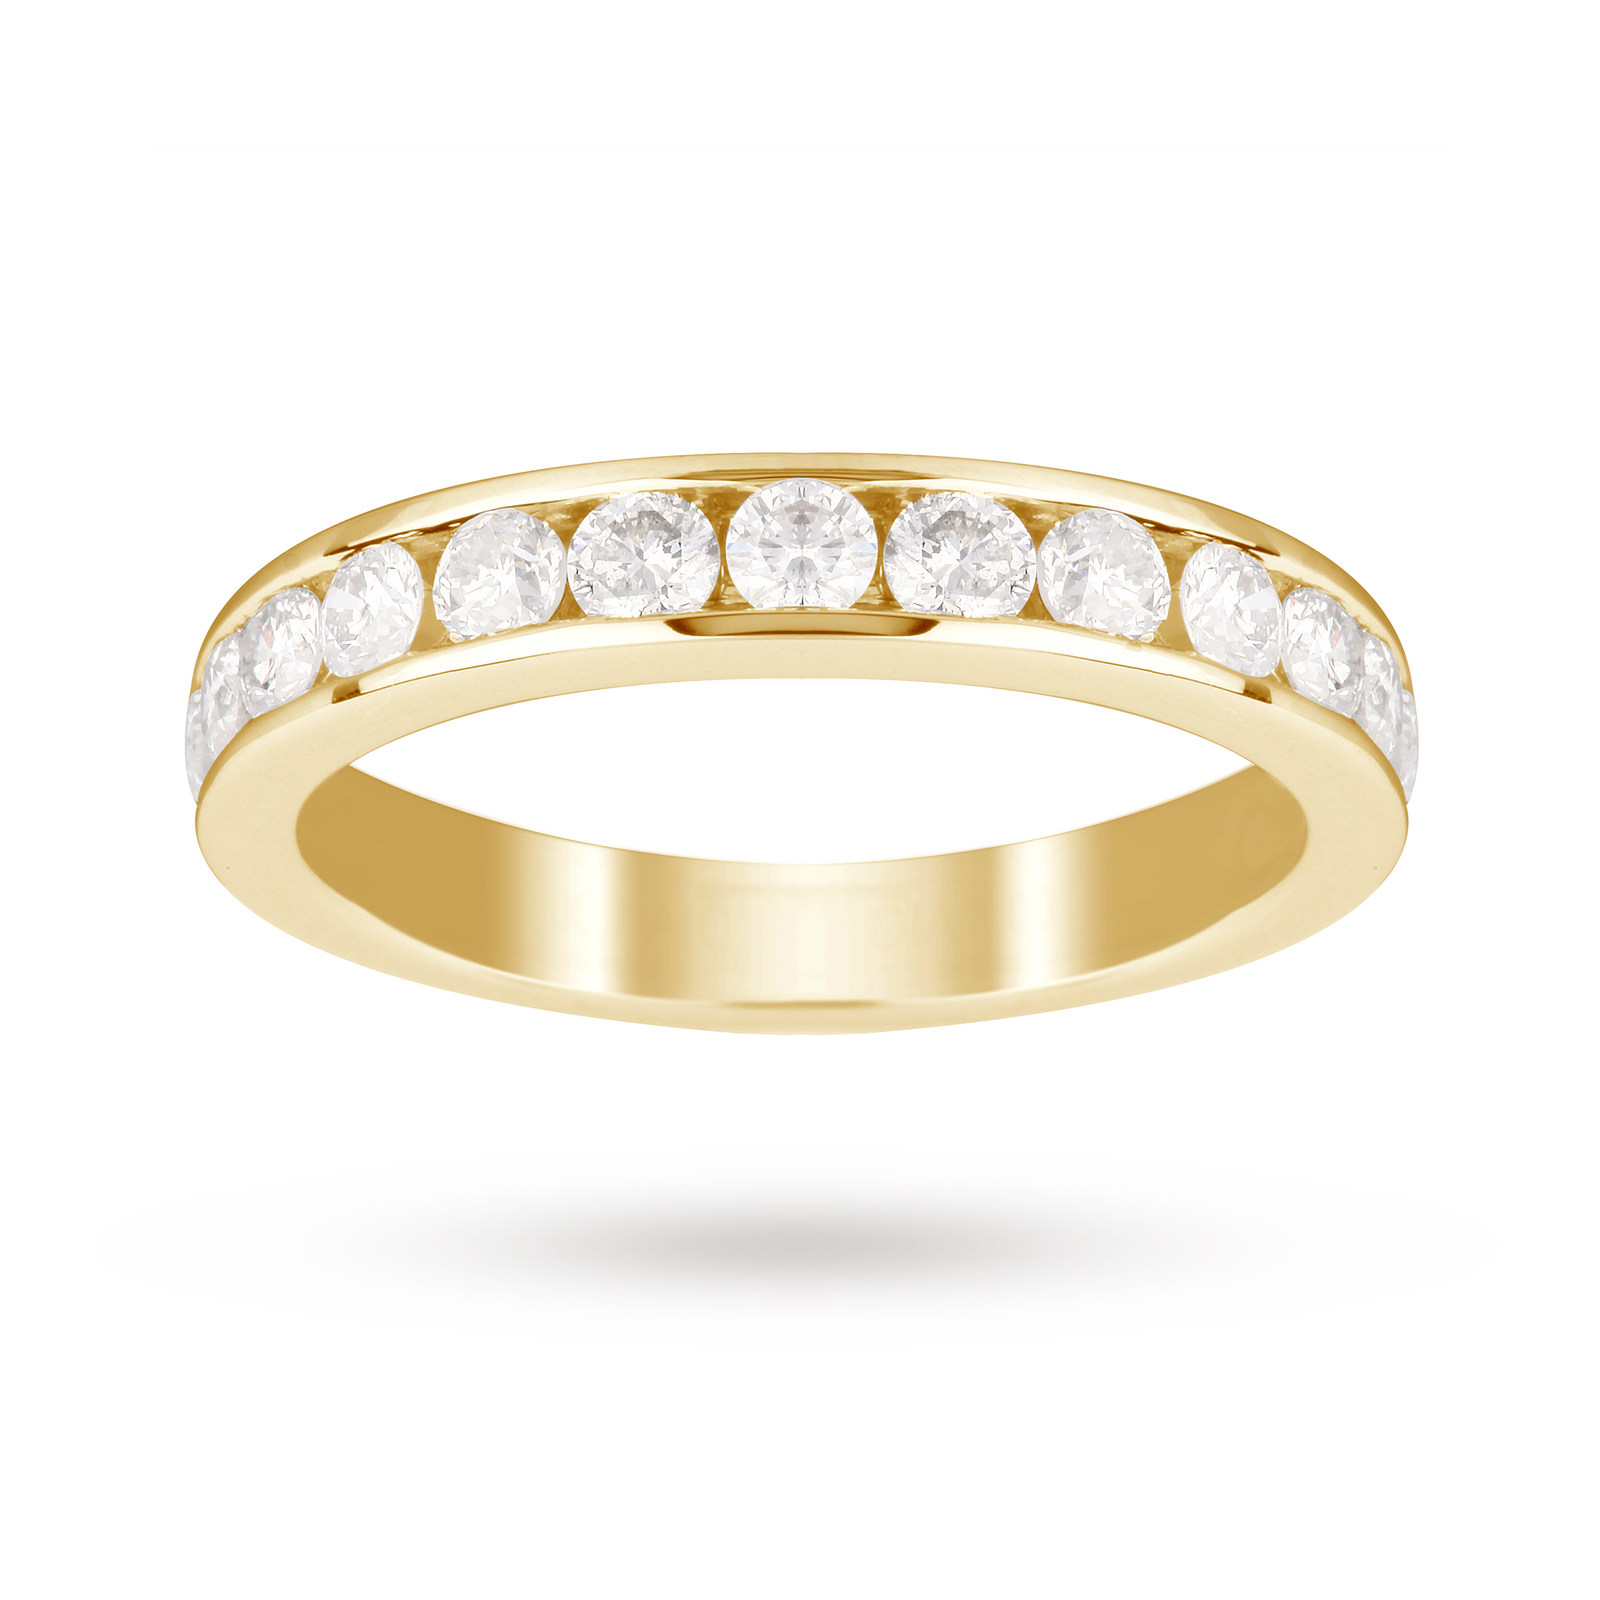 18ct Yellow Gold 1.00 Carat Total Weight Eternity Ring- Ring Size M